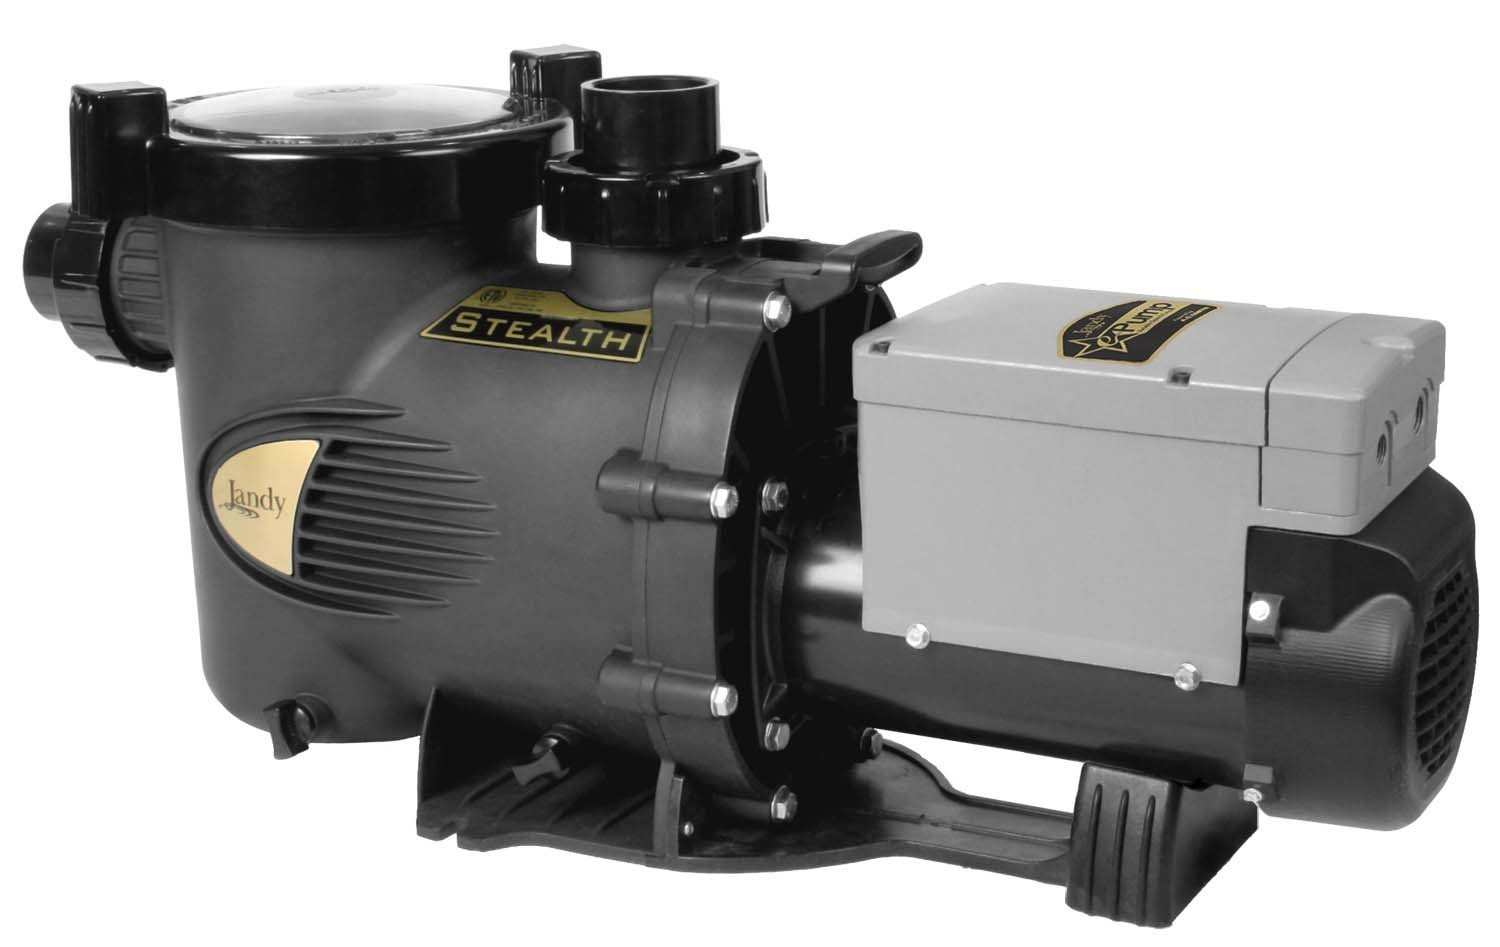 Jandy TLD-10-2071 - Jandy E-Pump Variable 8 Speed 2 HP Pool Pump JEP2.0